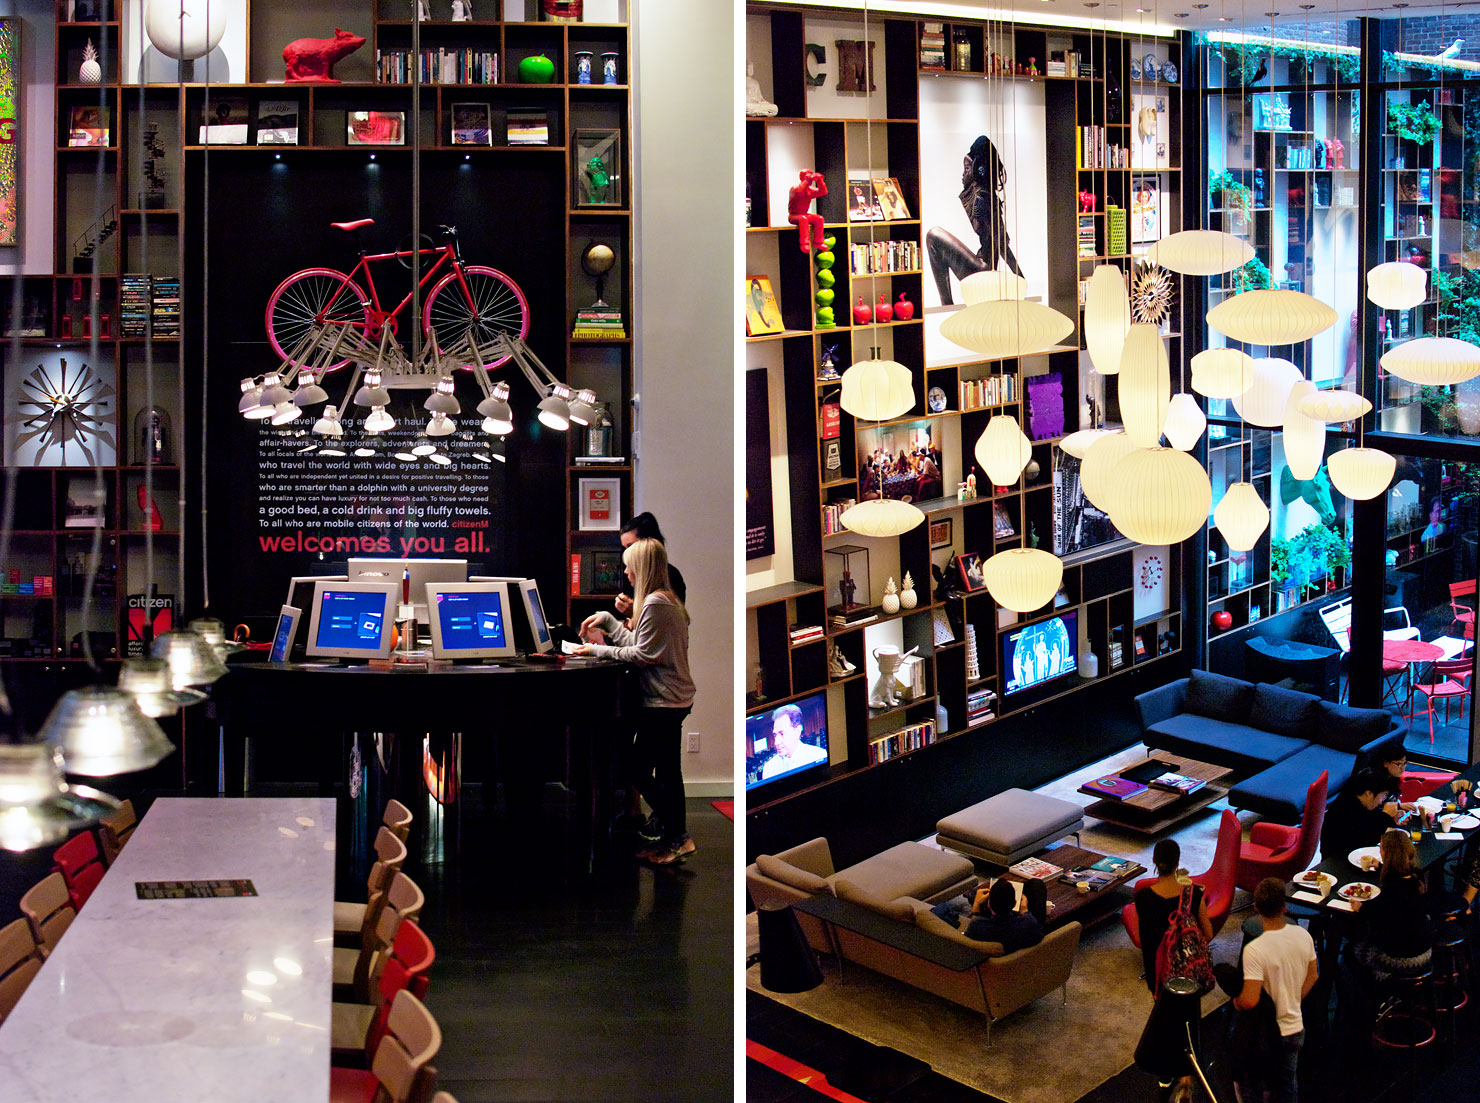 citizenM, photographed by urbanpixxles